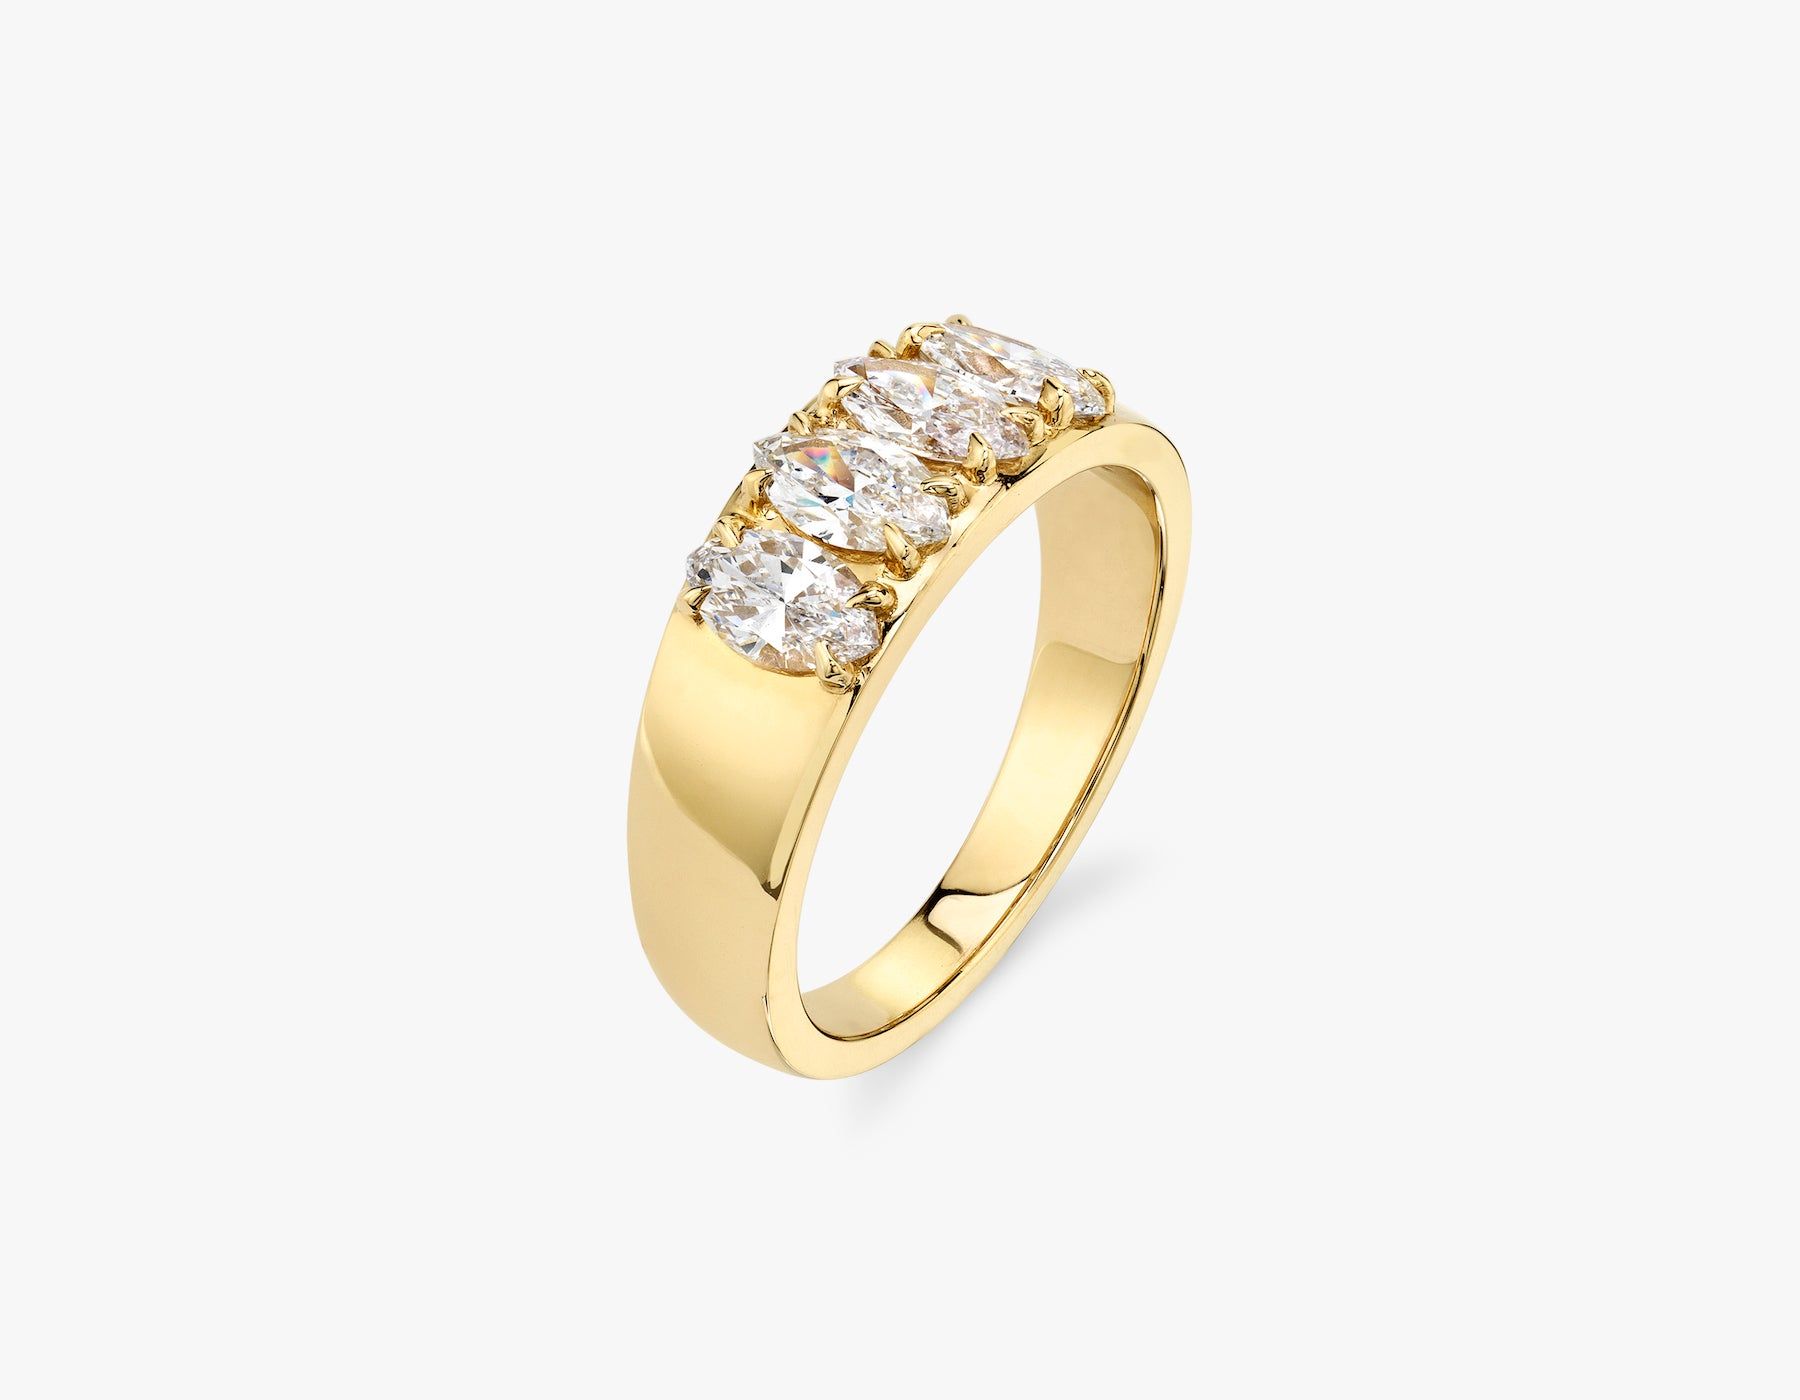 Vrai classic elegant Marquise Diamond Tetrad Band .25ct marquise Diamond Ring, 14K Yellow Gold